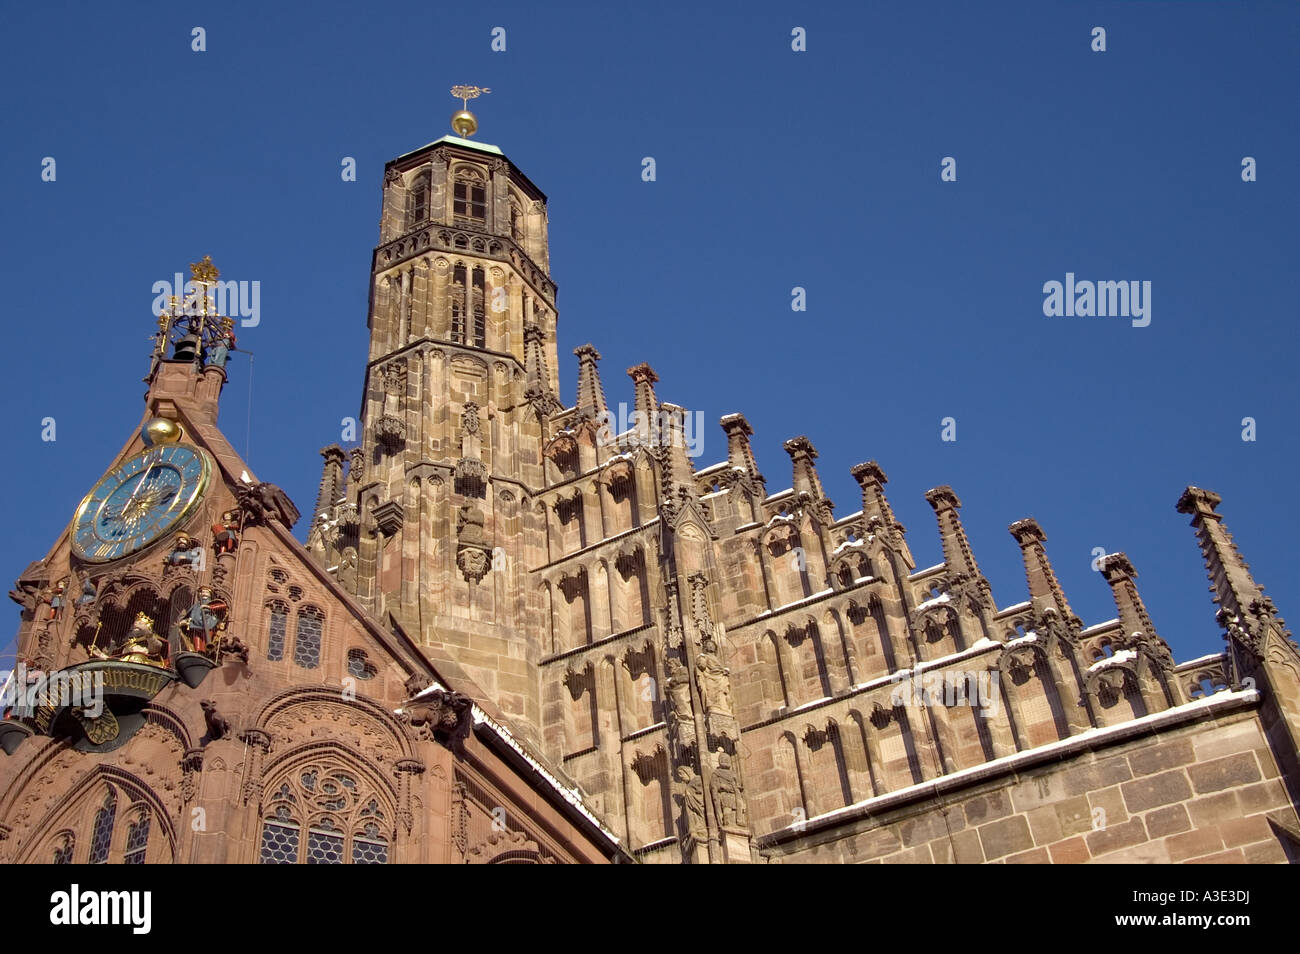 Detail view of St.Mary´s Church at the main/central-market Nuremberg, Bavaria, Germany - Stock Image